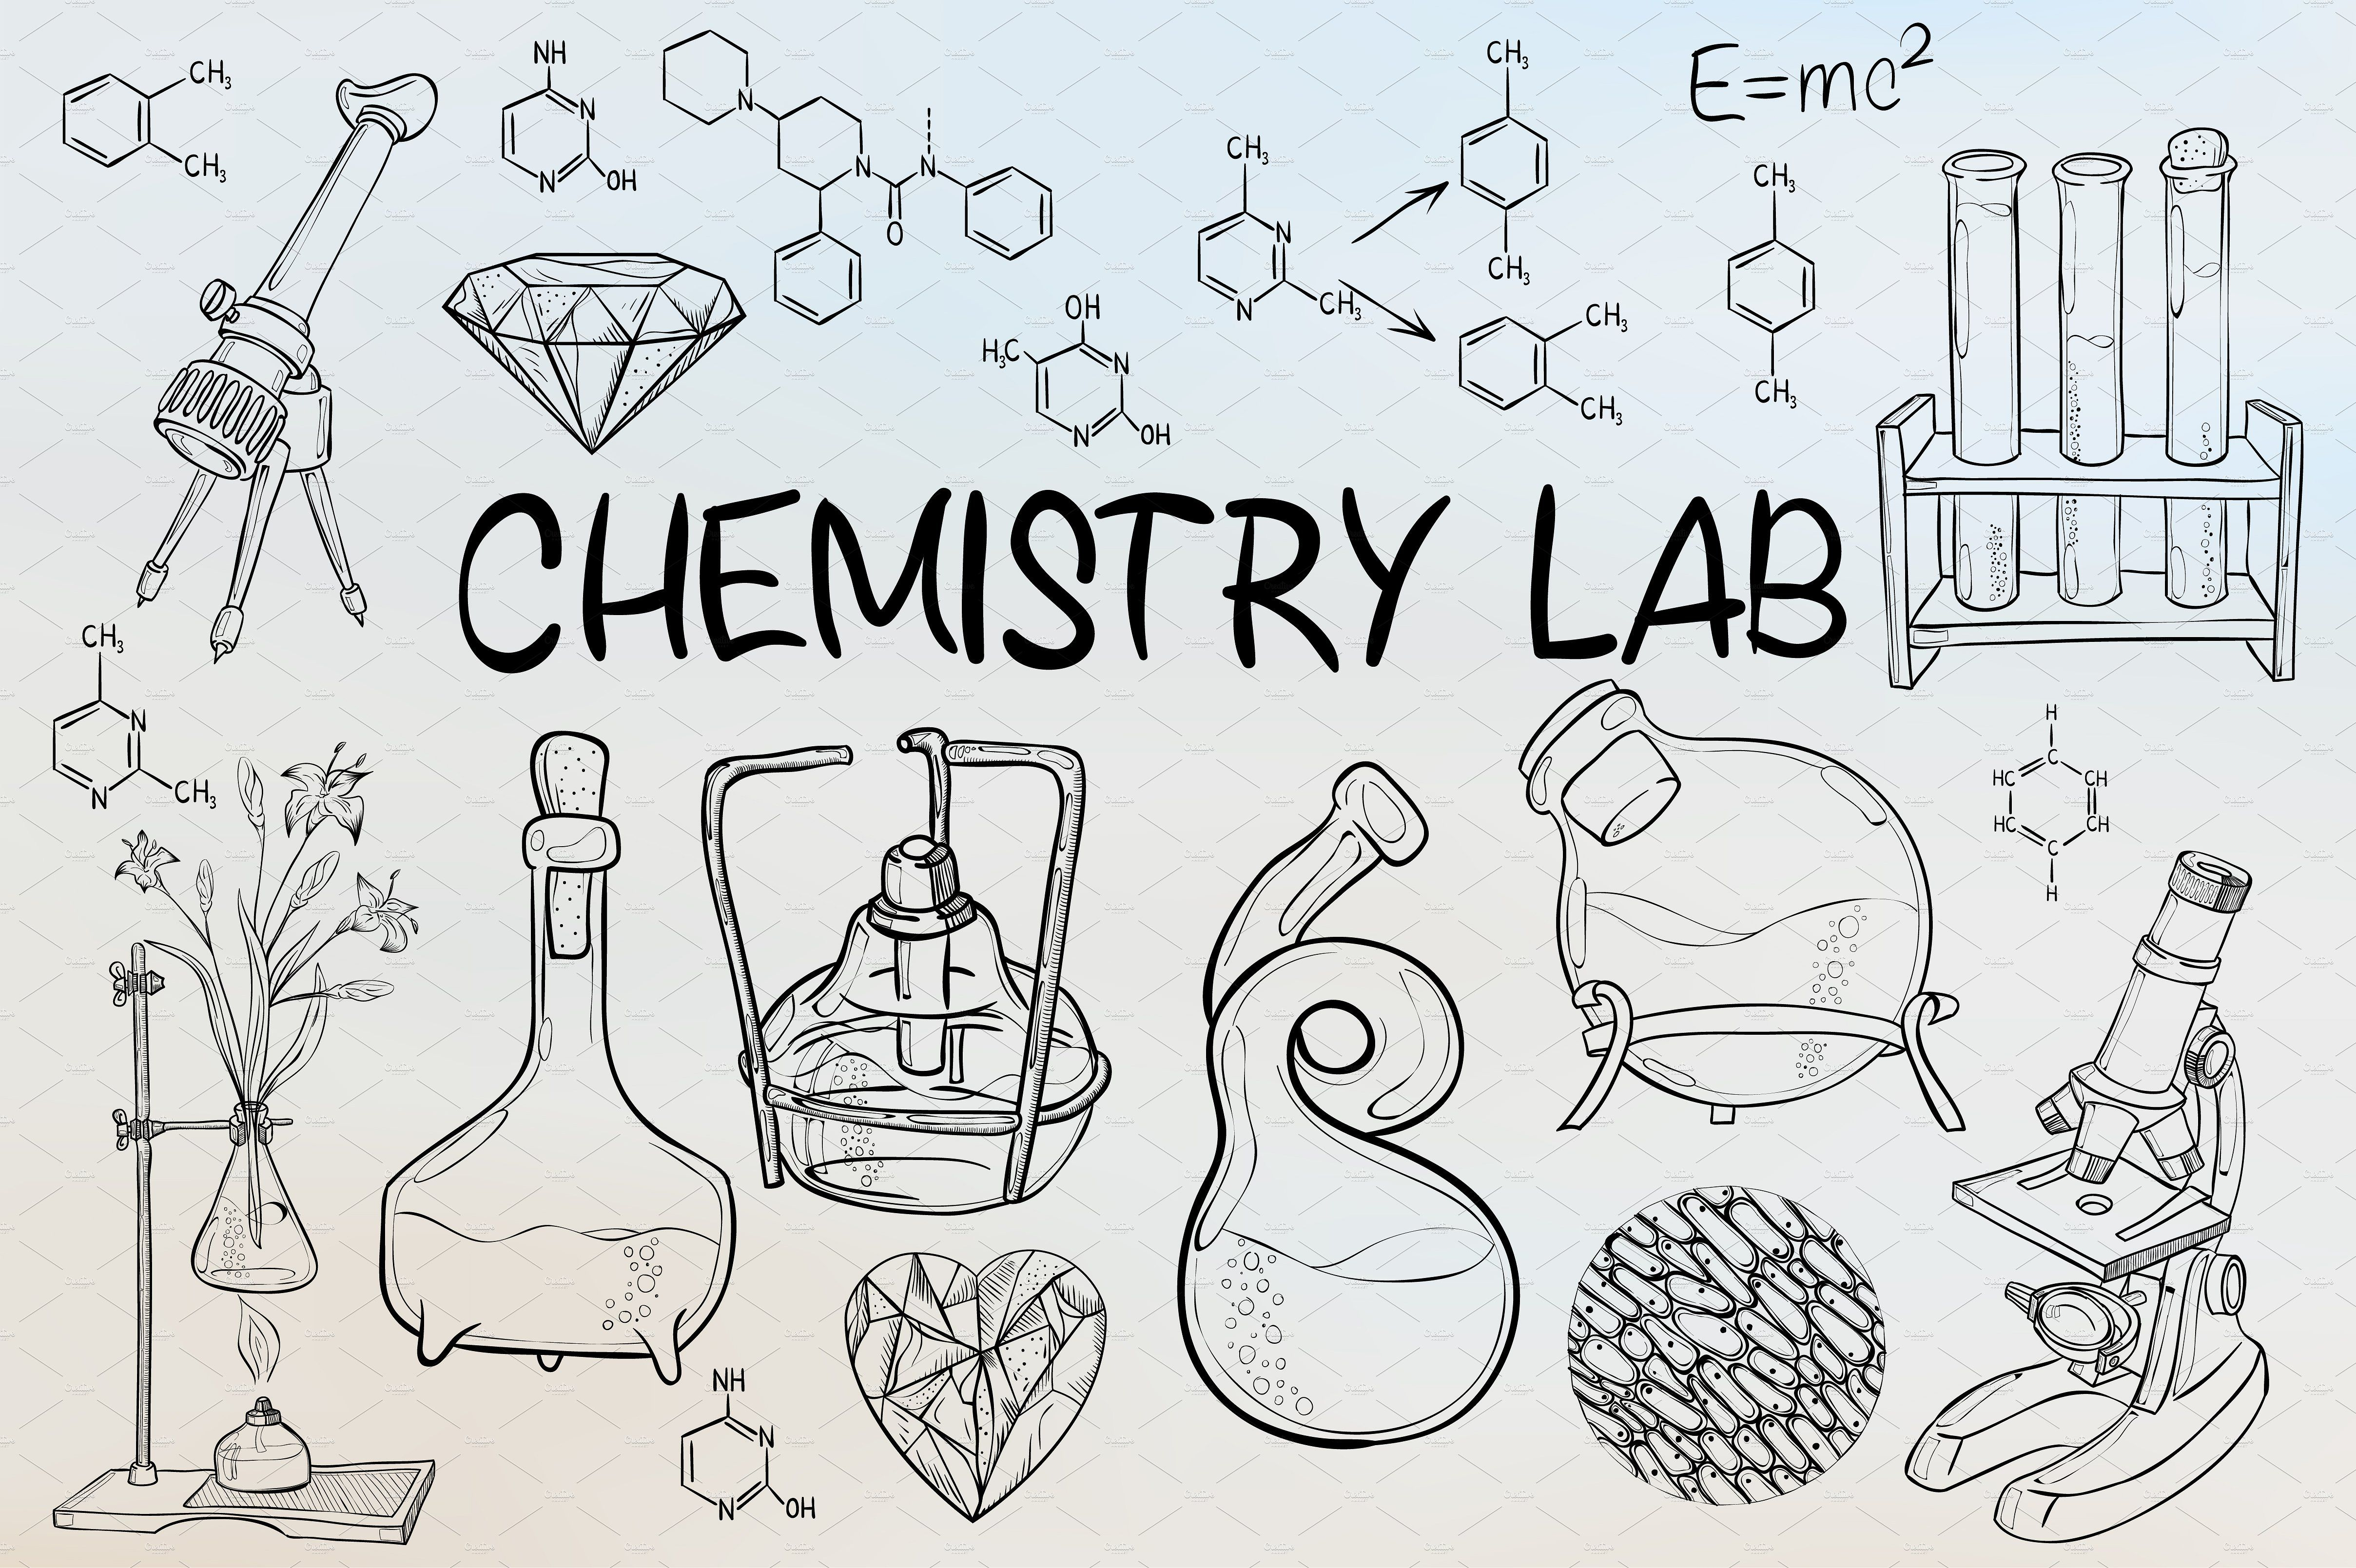 Chemistry Lab Equipment School Illustration Vector Doodle